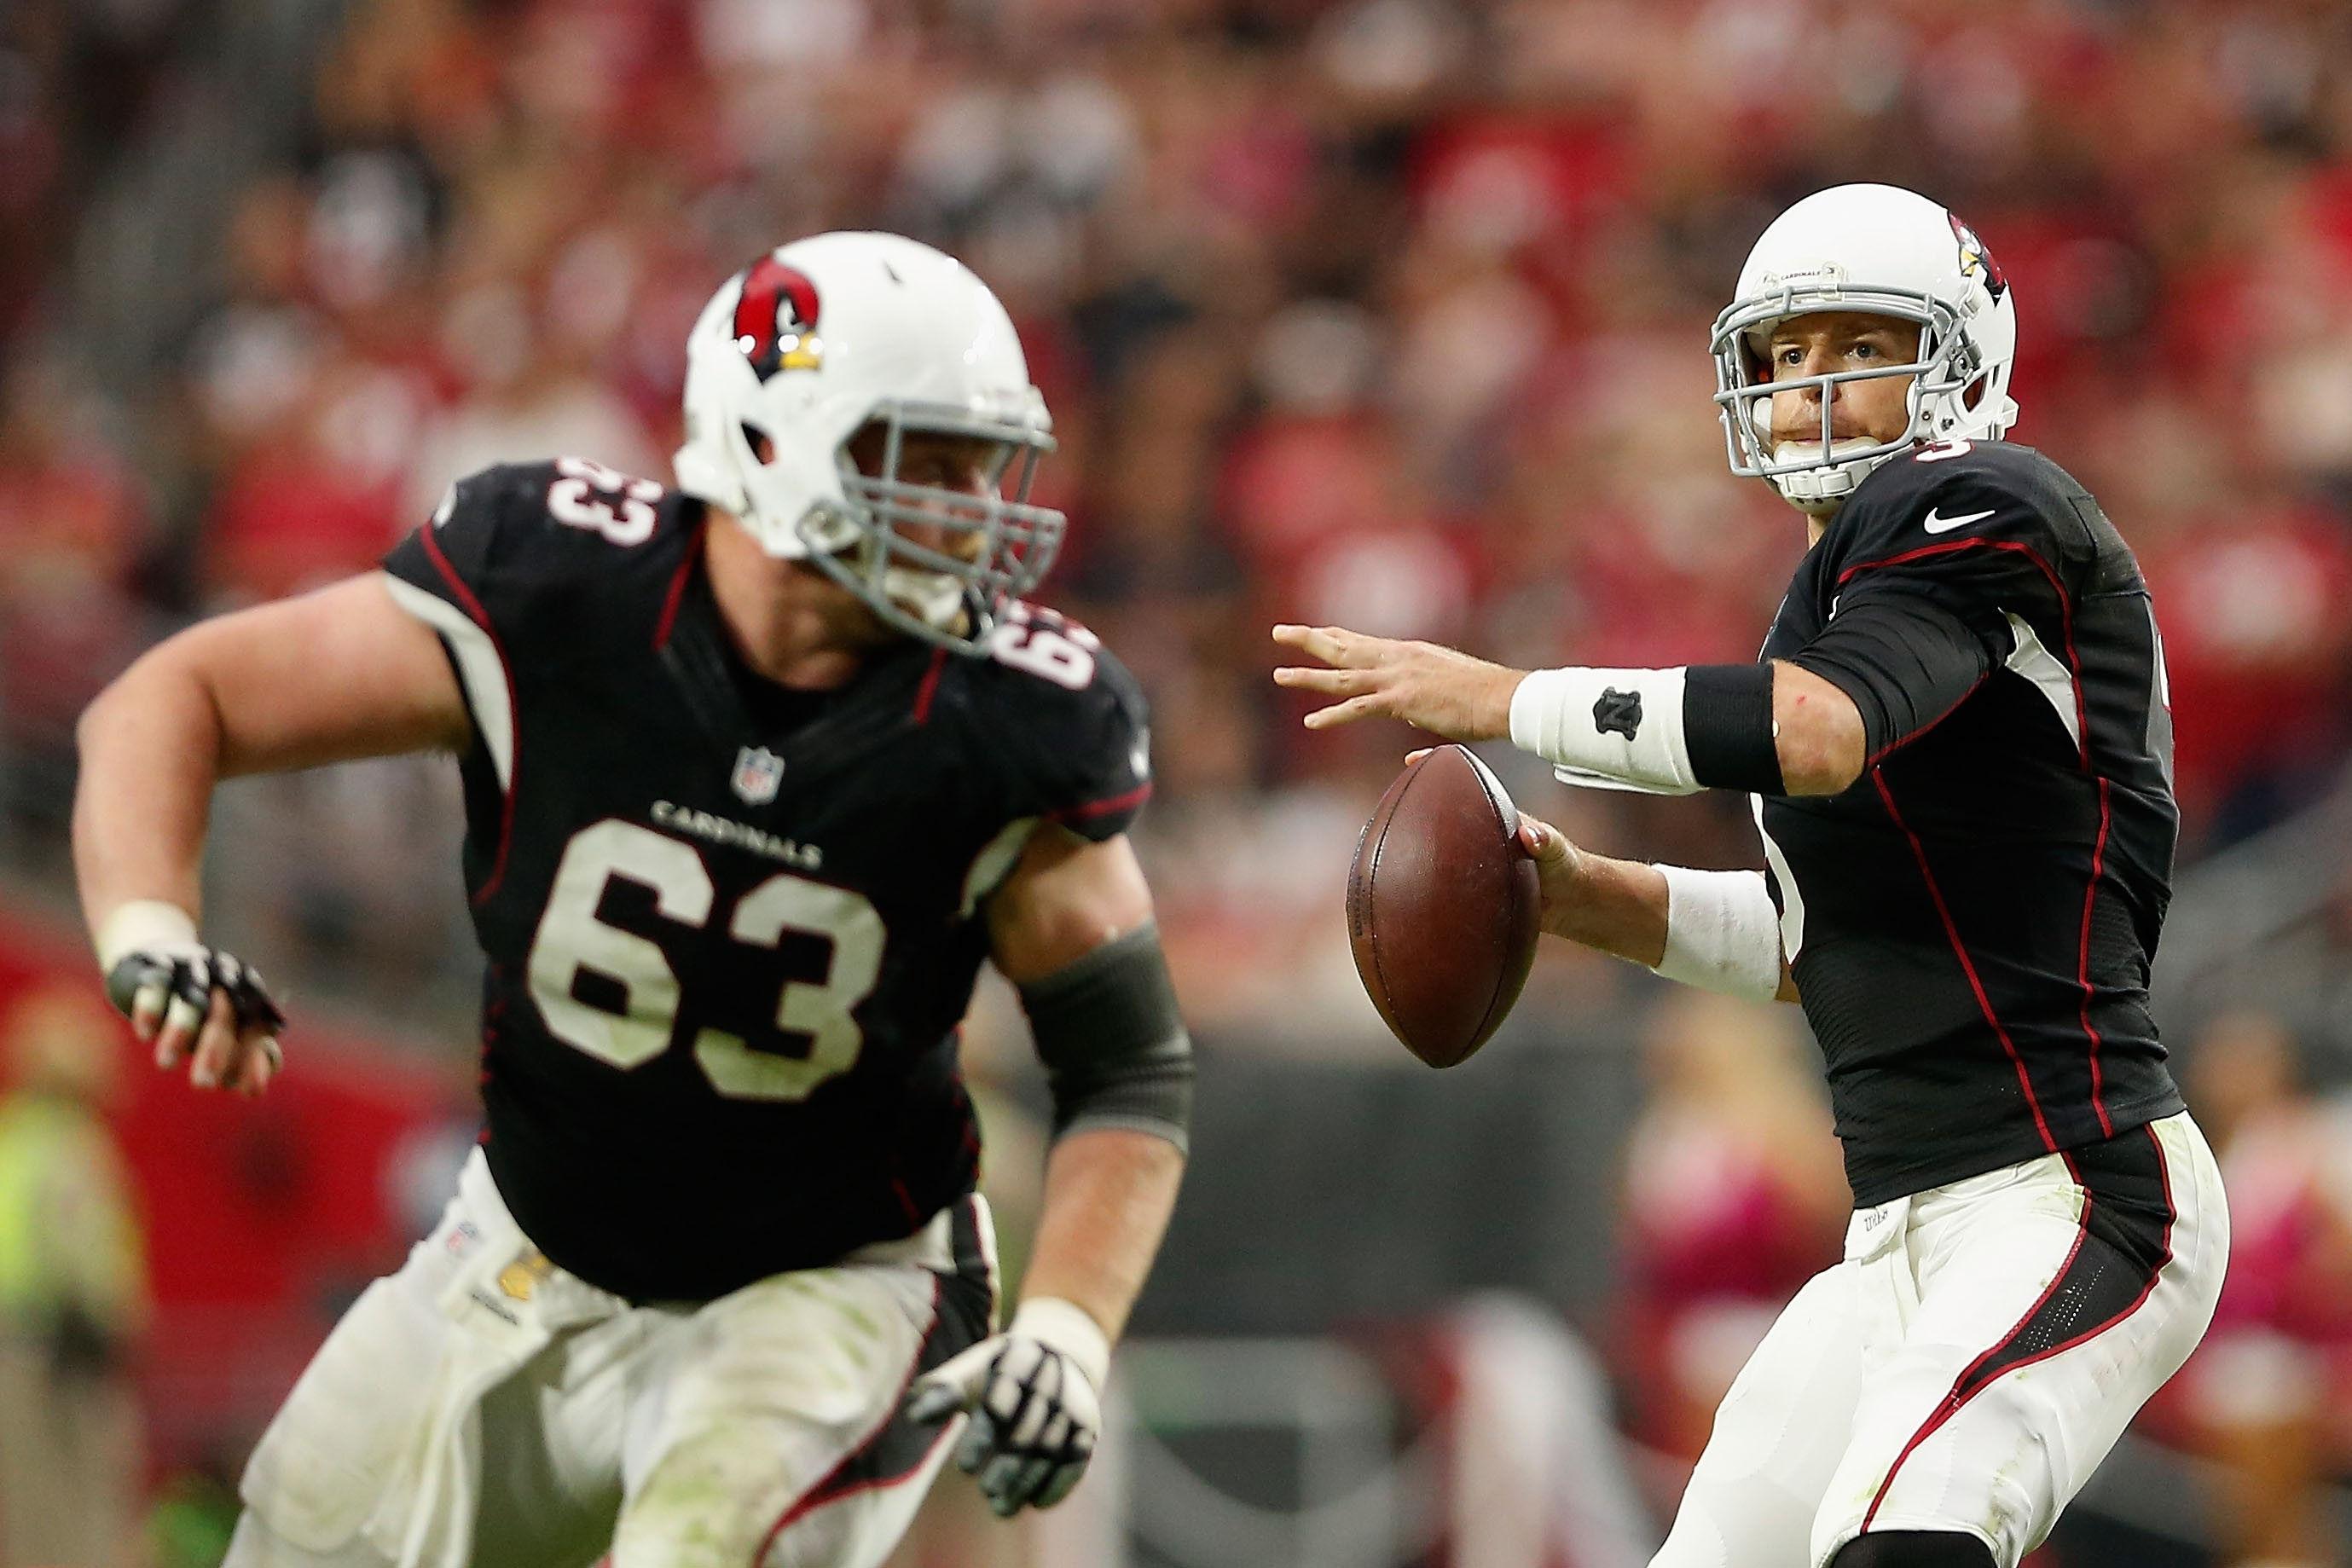 Arizona Cardinals quarterback Carson Palmer is coming off a tremendous regular season in which he threw for 35 touchdowns, 4,671 yards and a 104.5 passer rating. The Cards led the league in offense in 2015.